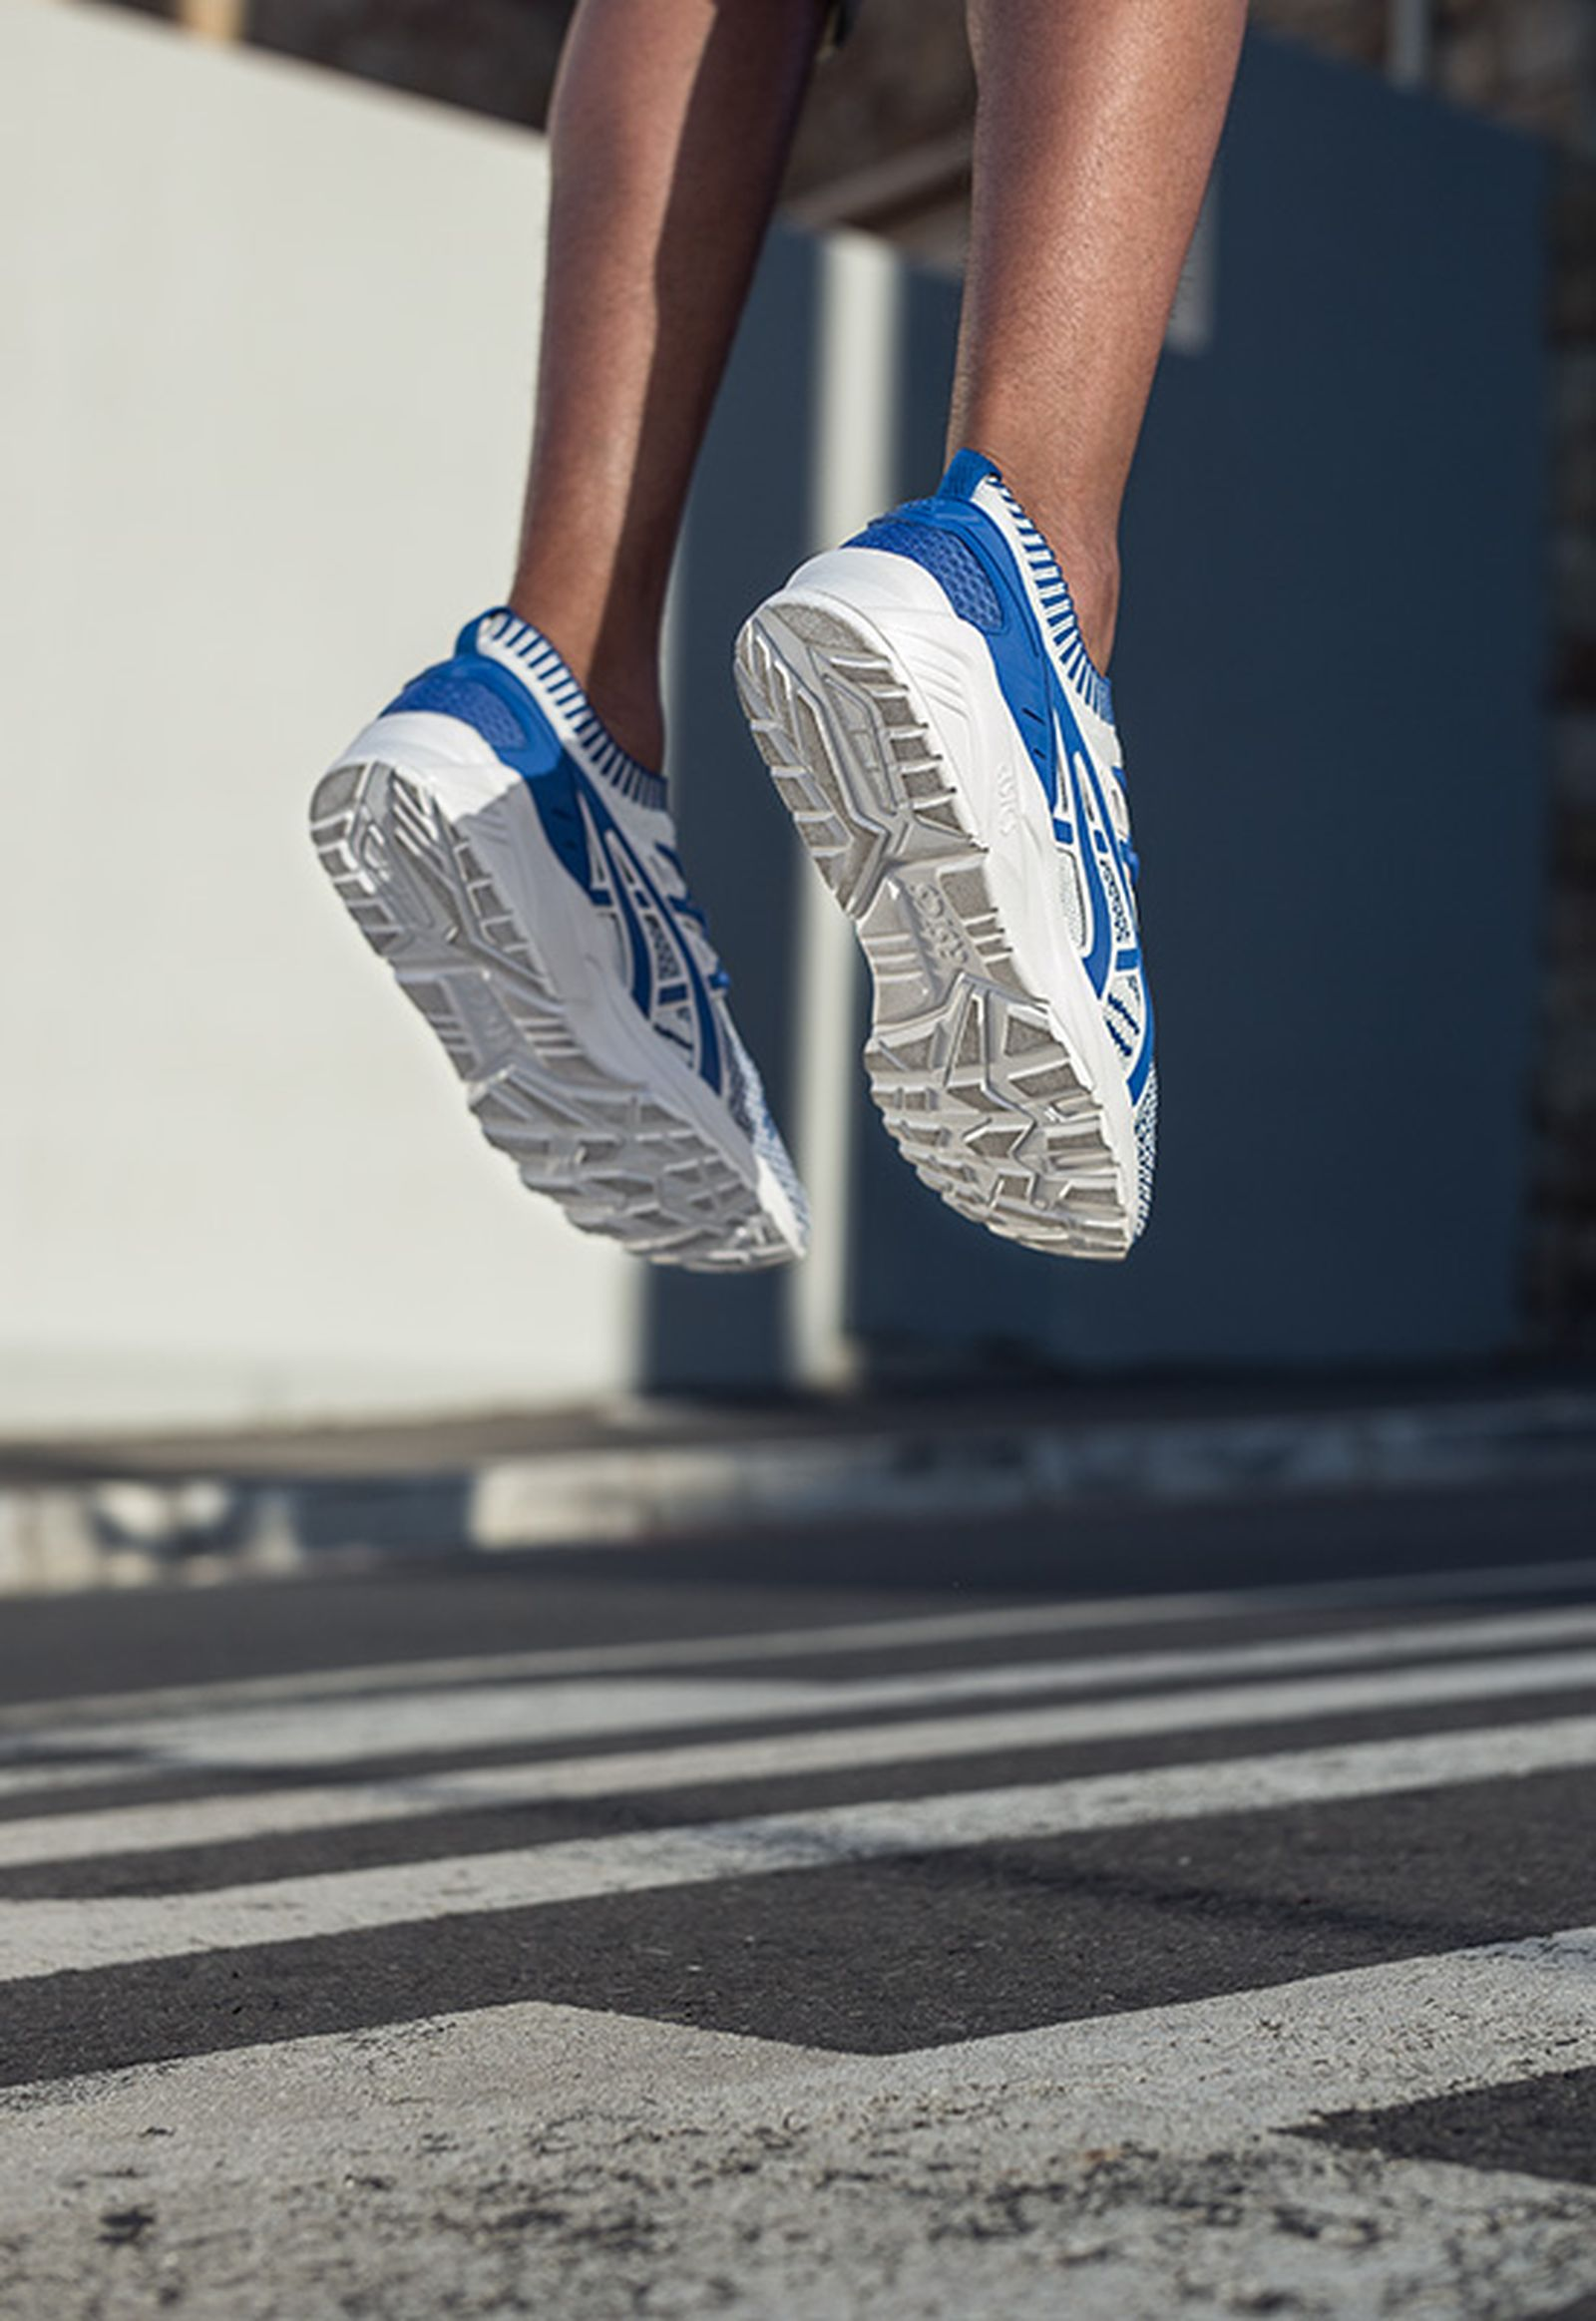 asics-tiger-gel-kayano-trainer-knit-colors-12